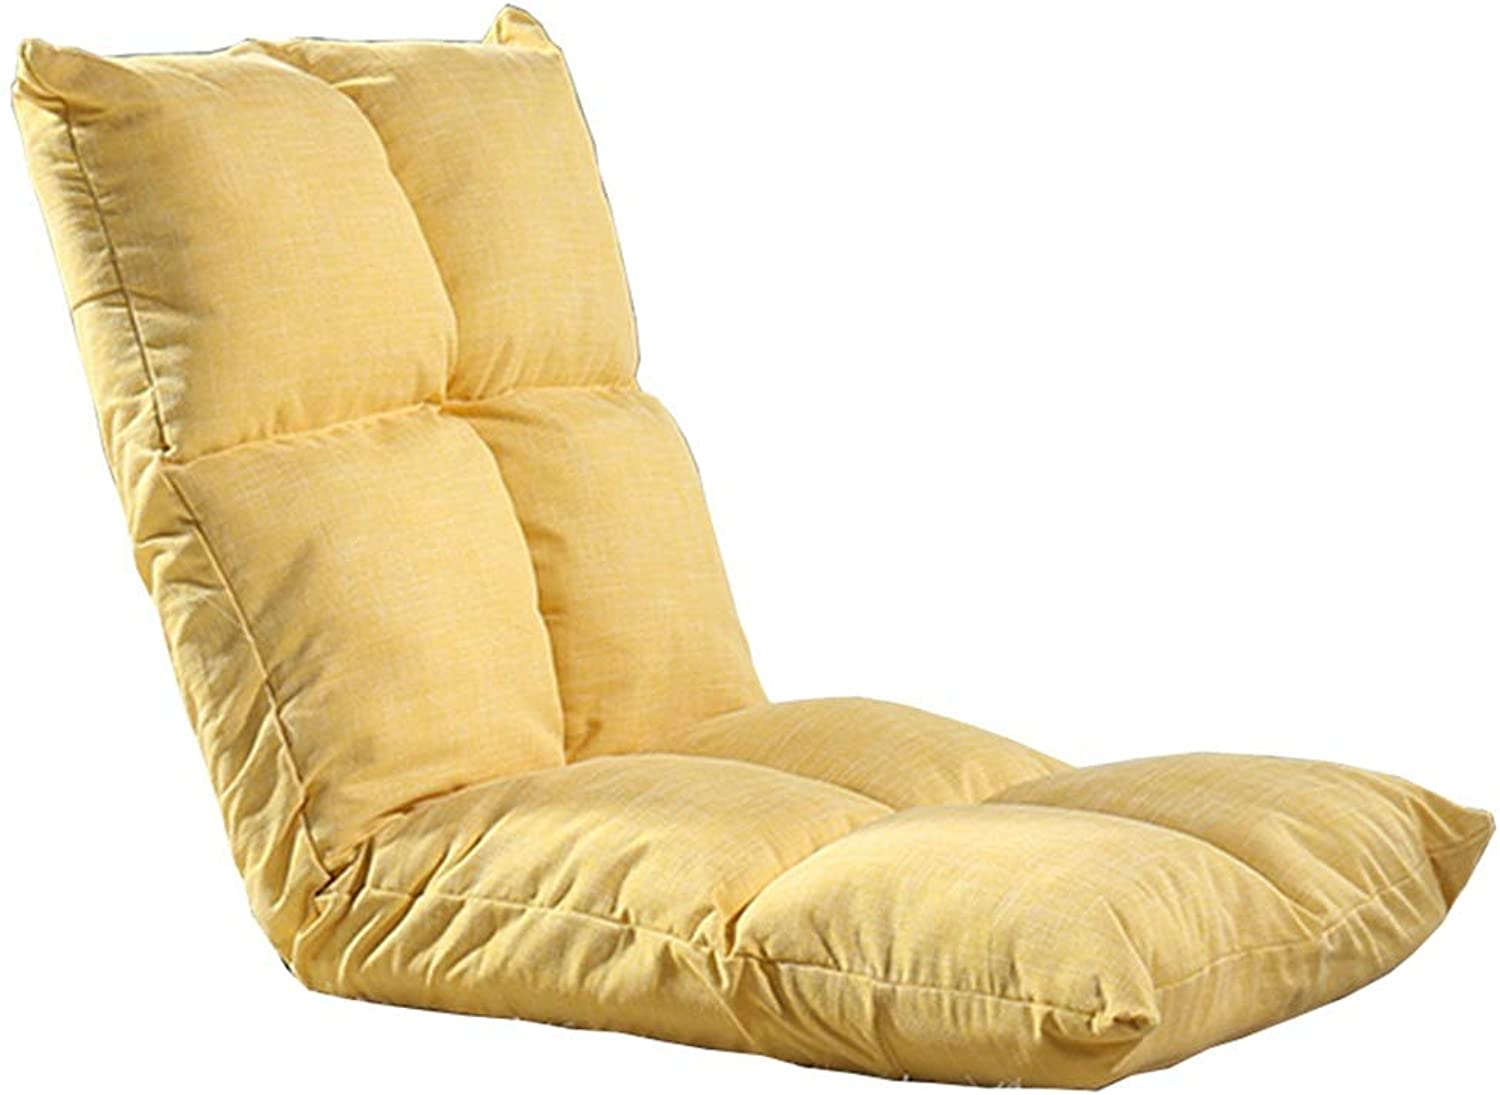 LJFYXZ Foldable Padded Floor Chair Single Sofa 6-Speed Adjustment Metal Frame Breathable Cotton Four Seasons use Bedroom Living Room Bearing Weight 120kg 110x52x13cm (color   Yellow)